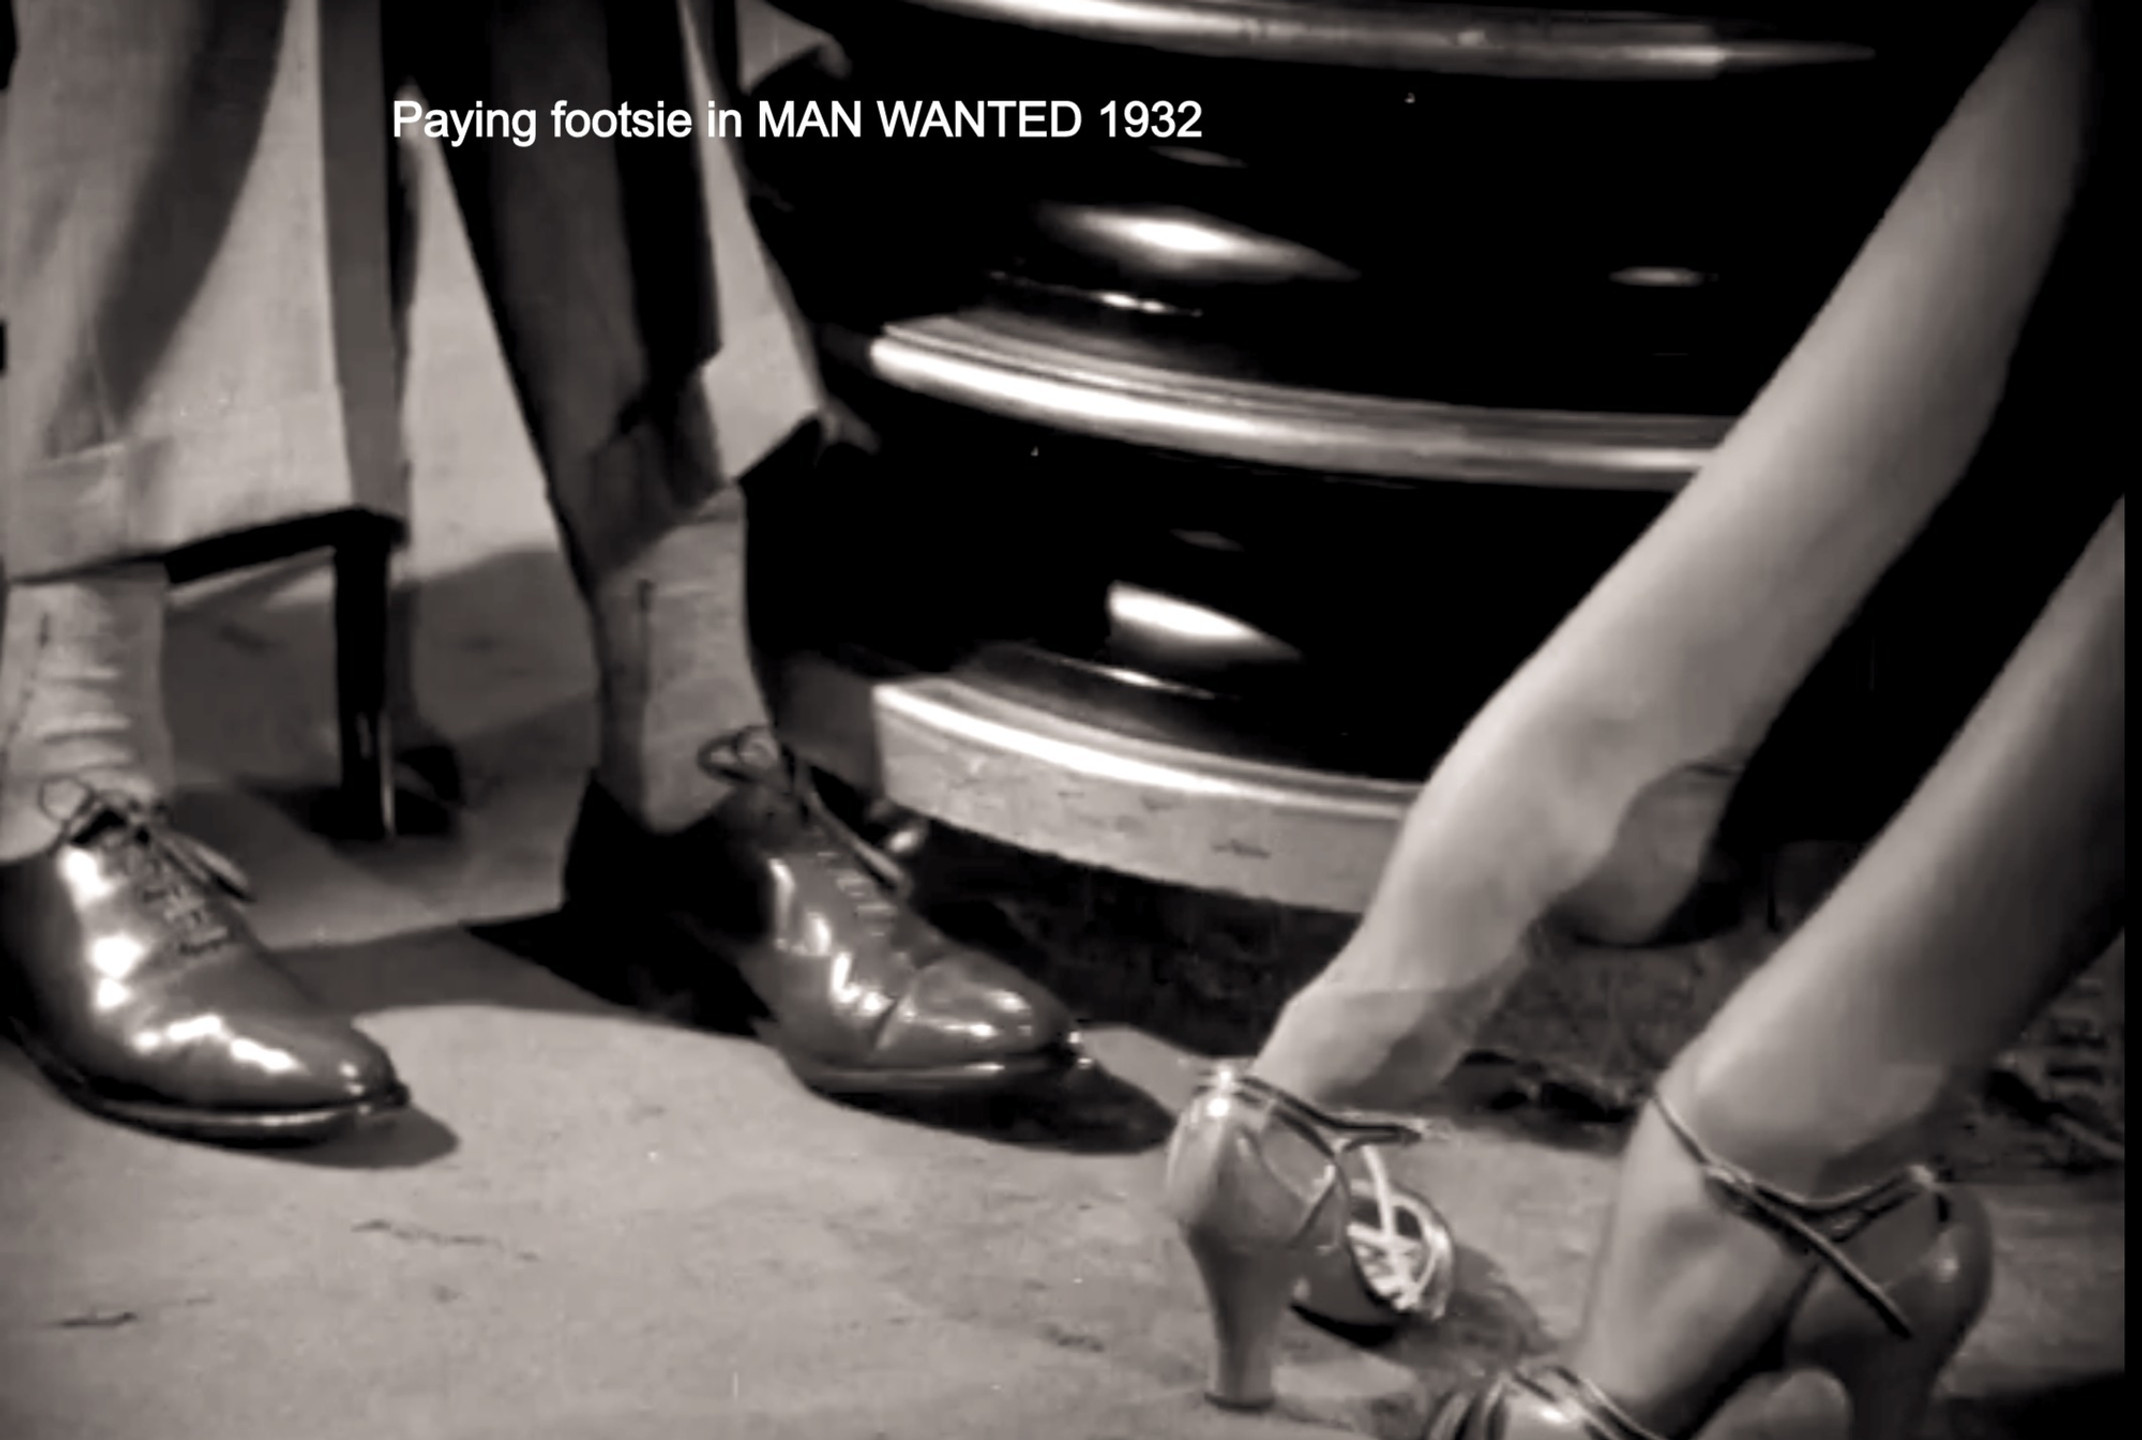 Manners and Francis play footsie in Man Wanted 1932